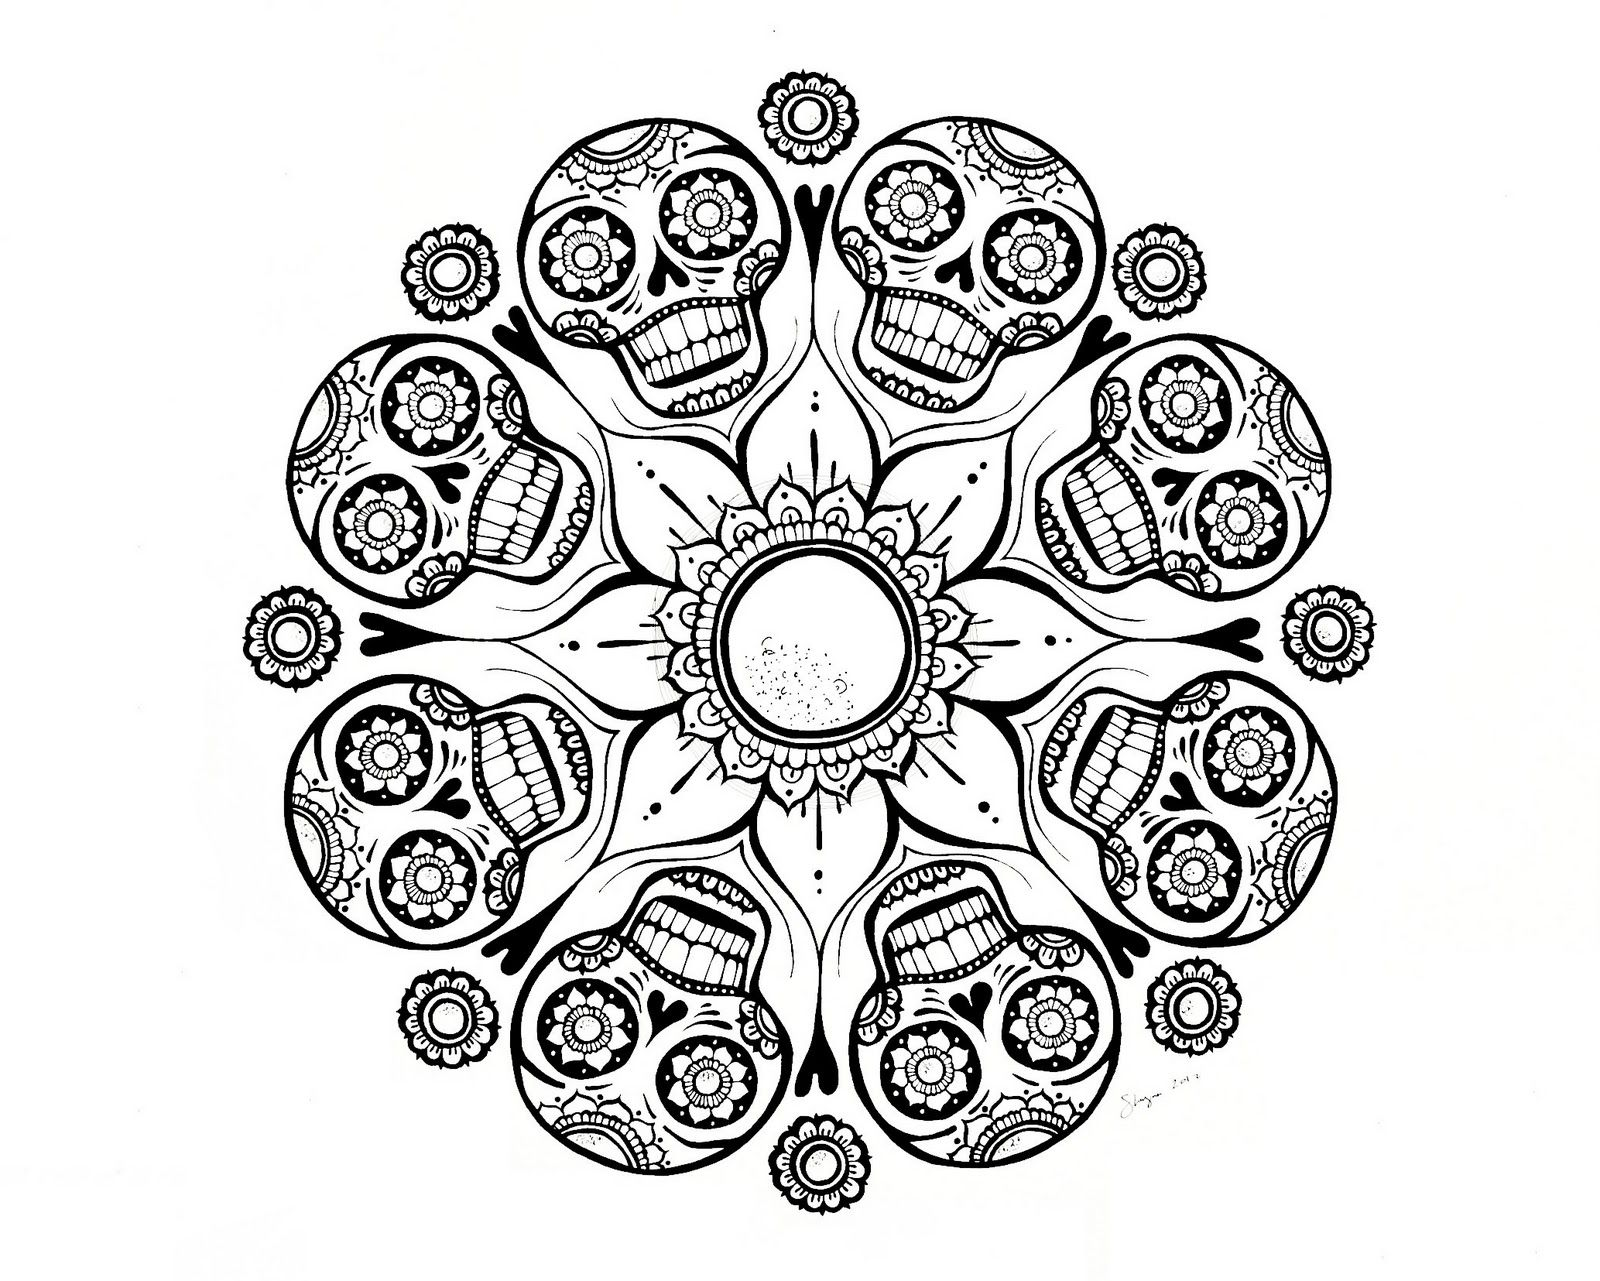 Adult coloring pages free printables mandala - Skull Mandala Coloring Pages Am Selling Pdf Downloads In My Etsy Shop For 4